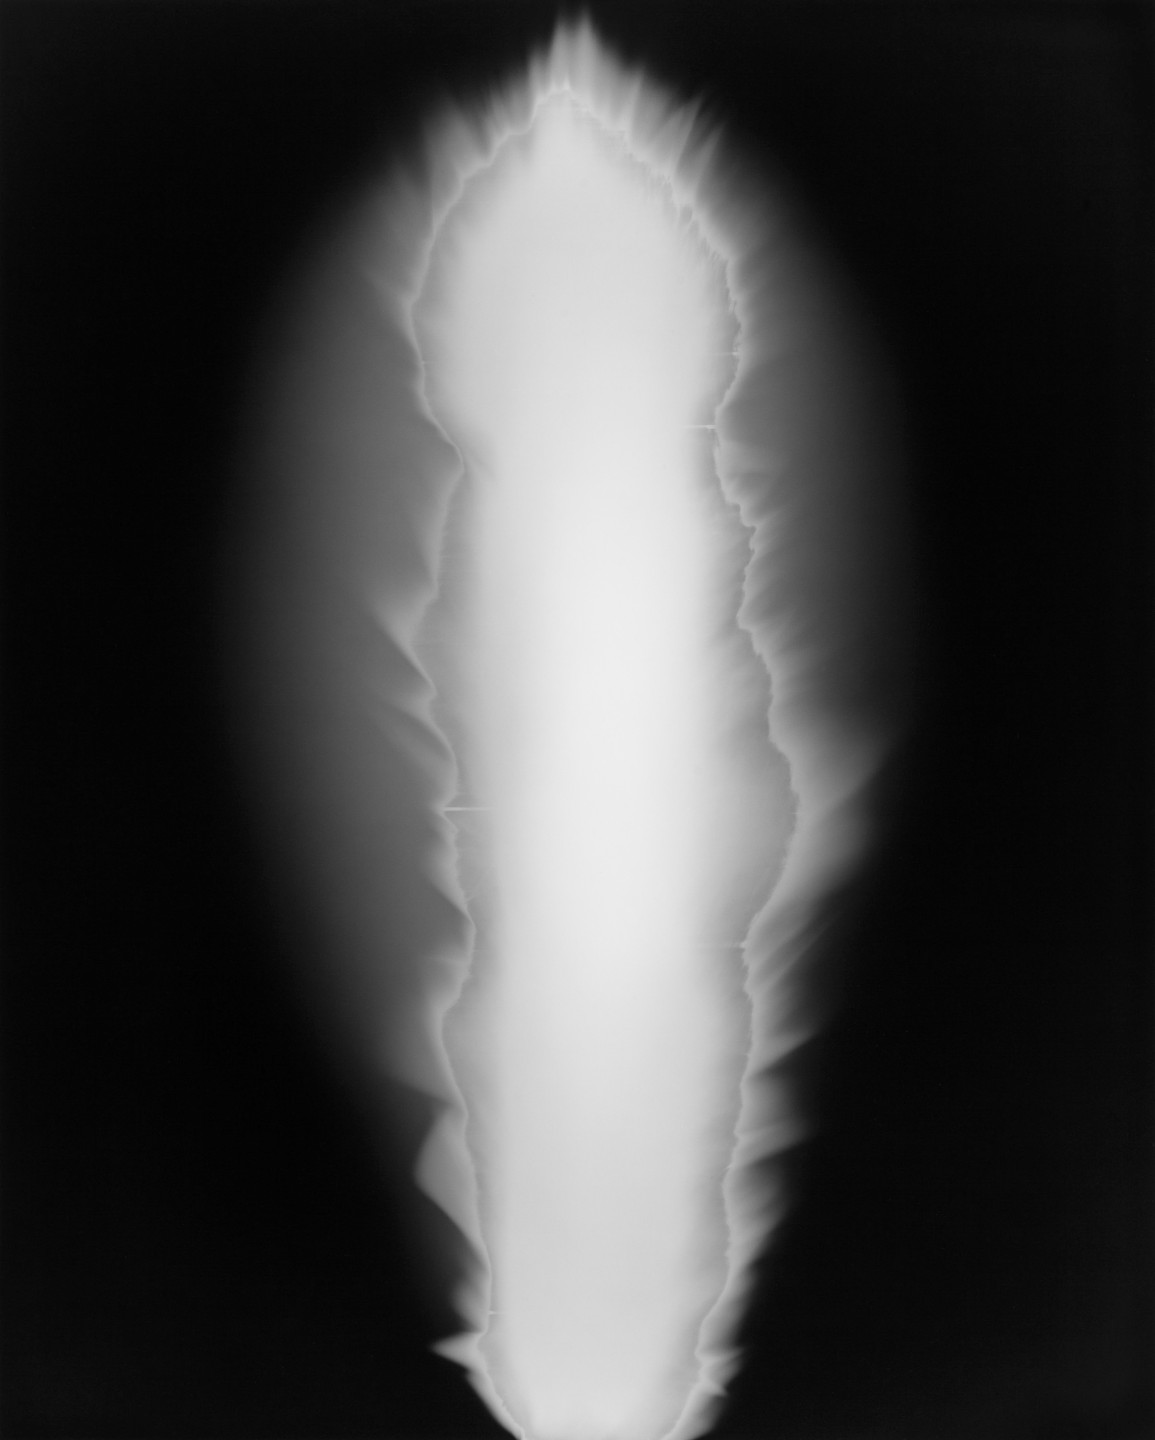 Hiroshi Sugimoto, In Praise of Shadows, 1998; courtesy of Fraenkel Gallery